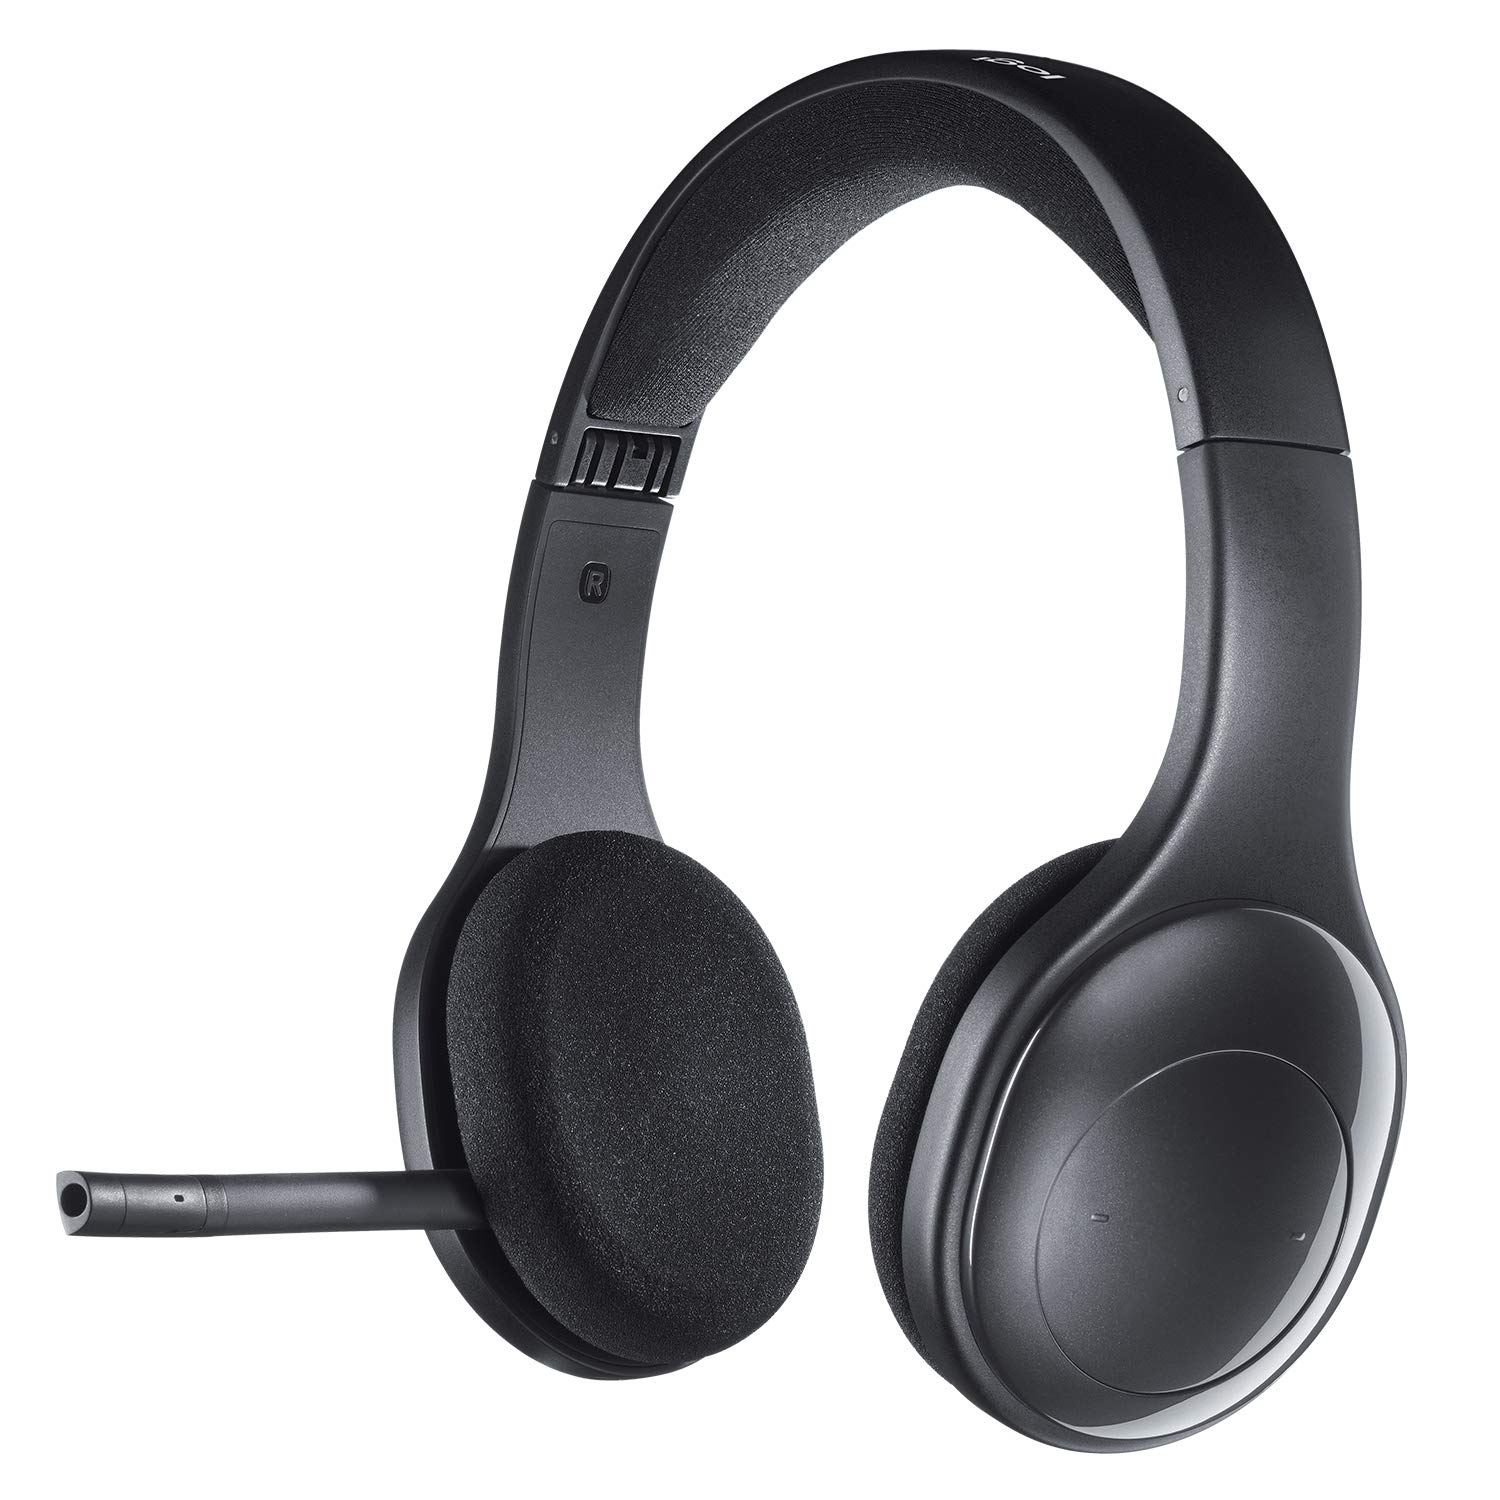 Amazon Com Logitech H800 Bluetooth Wireless Headset With Mic For Pc Tablets And Smartphones Black Electronics